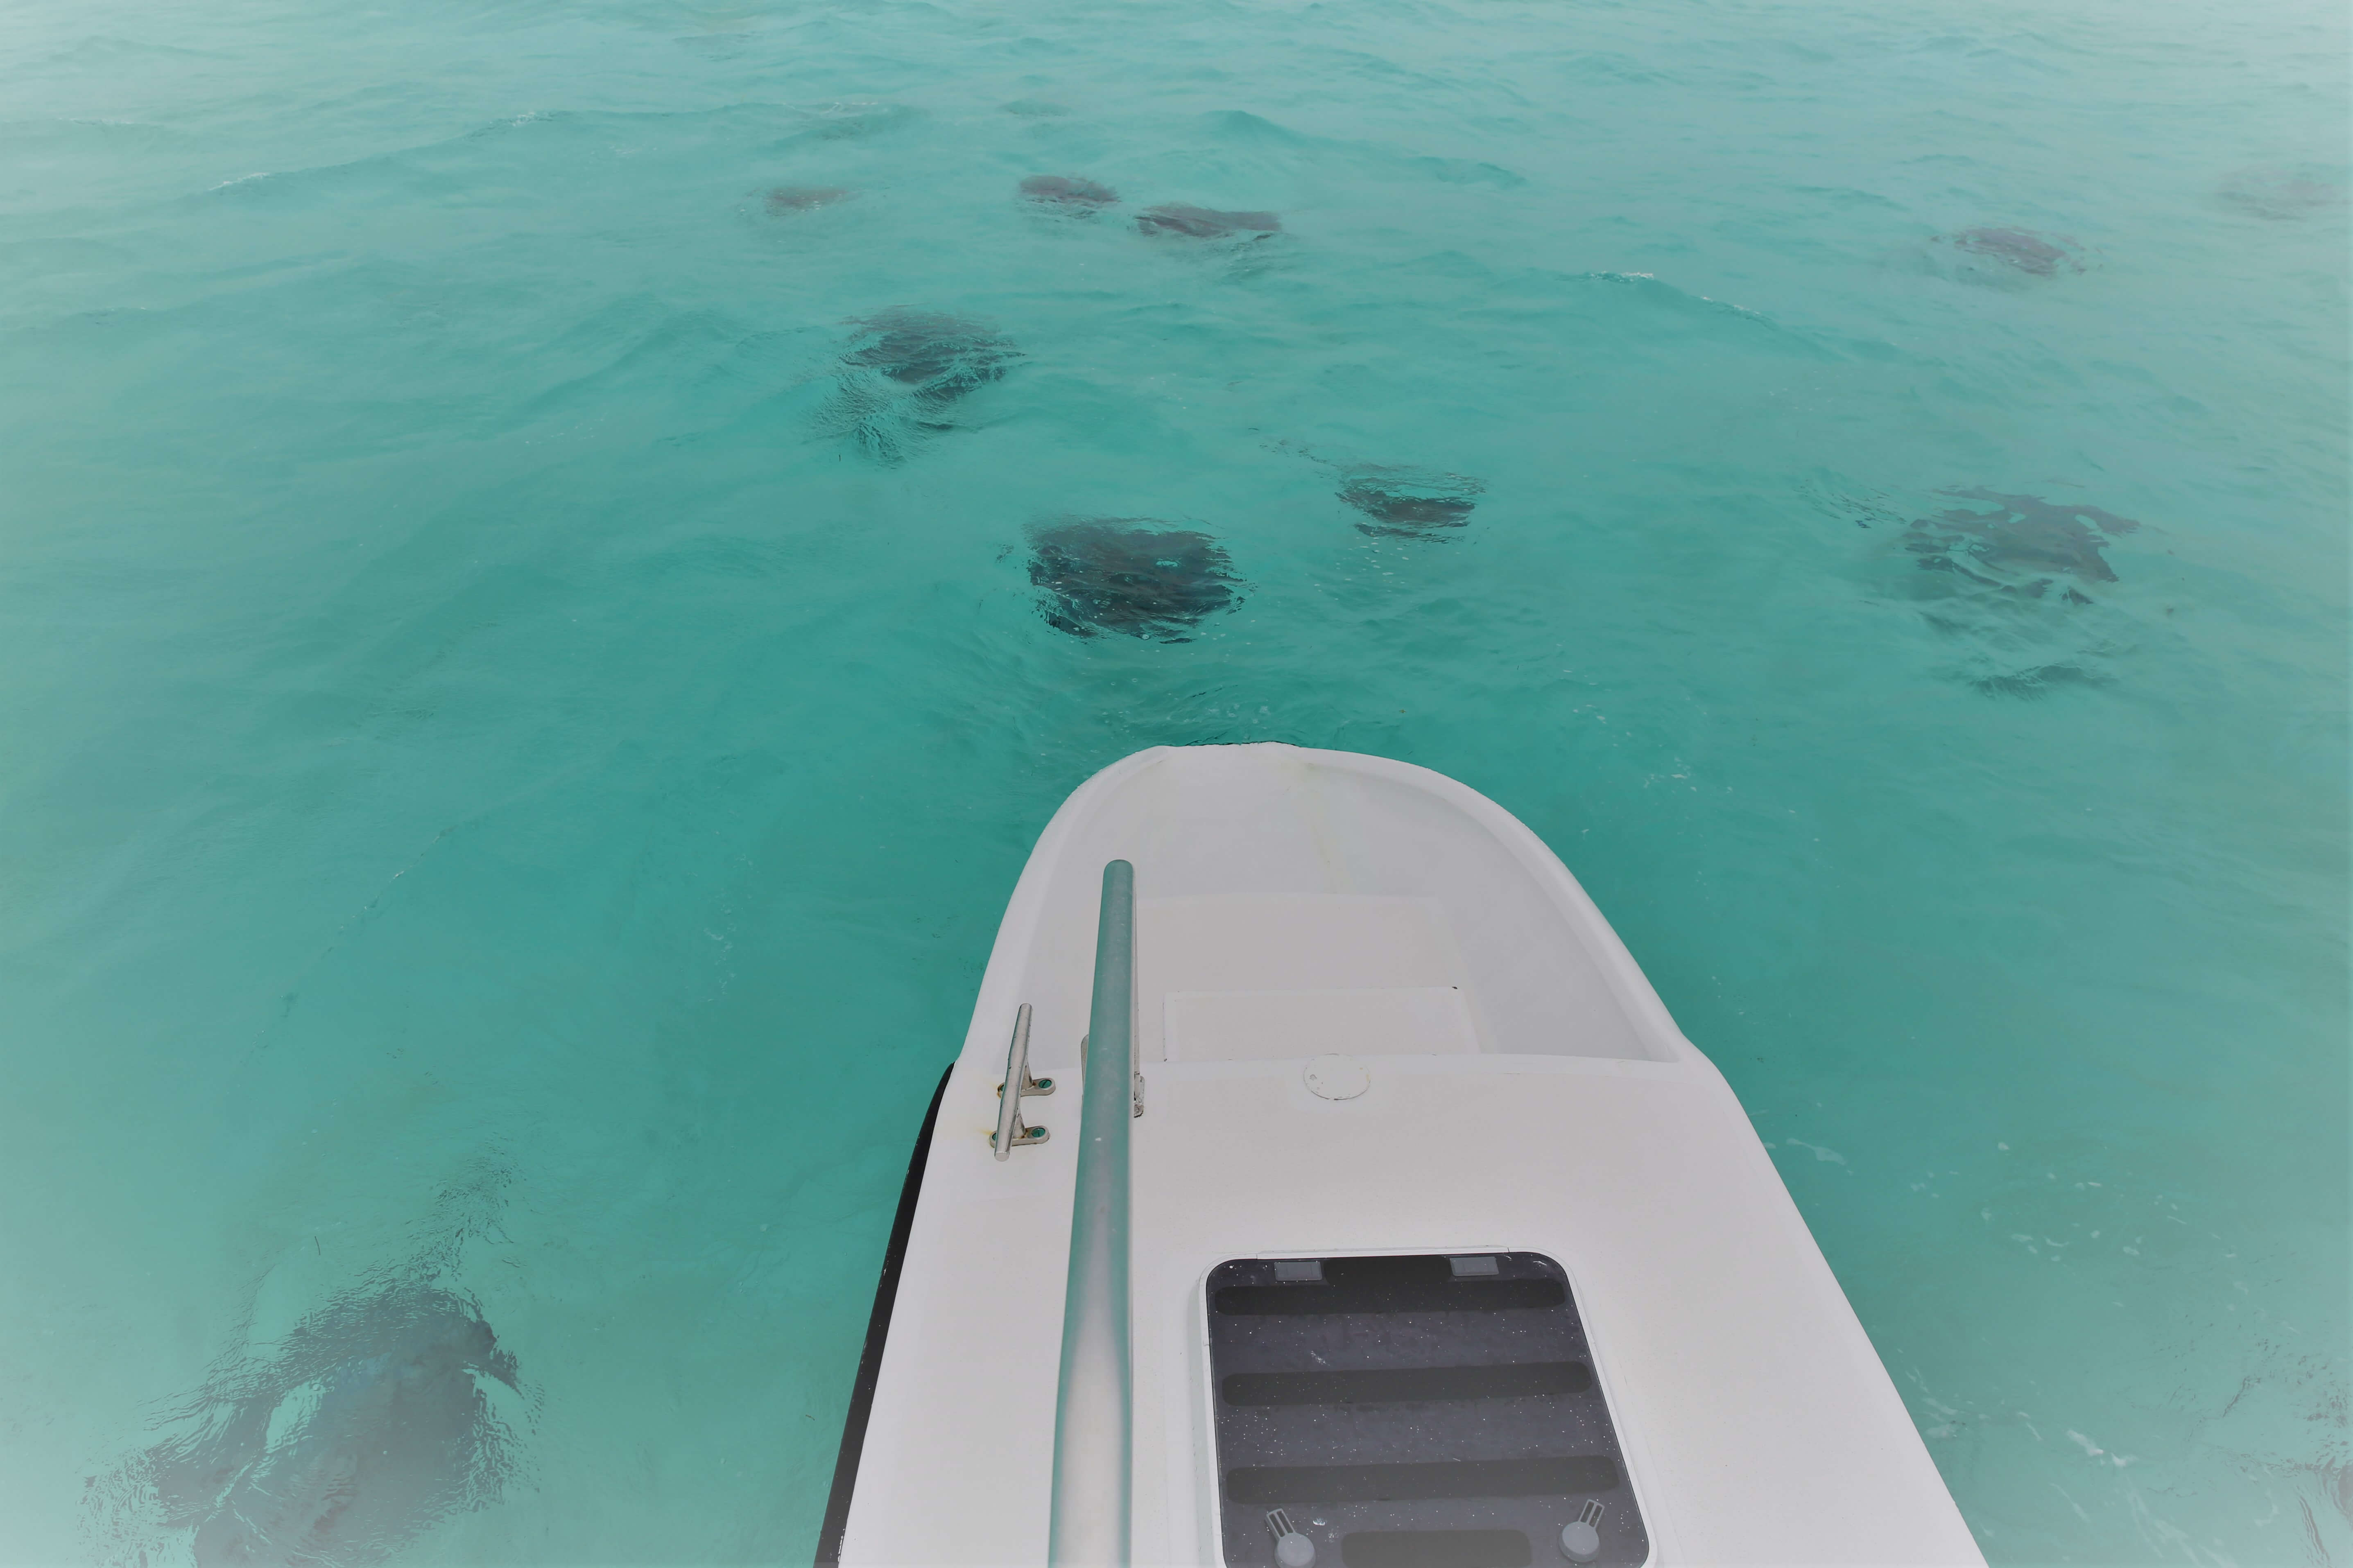 Stingray's surround our boat at Stingray city.